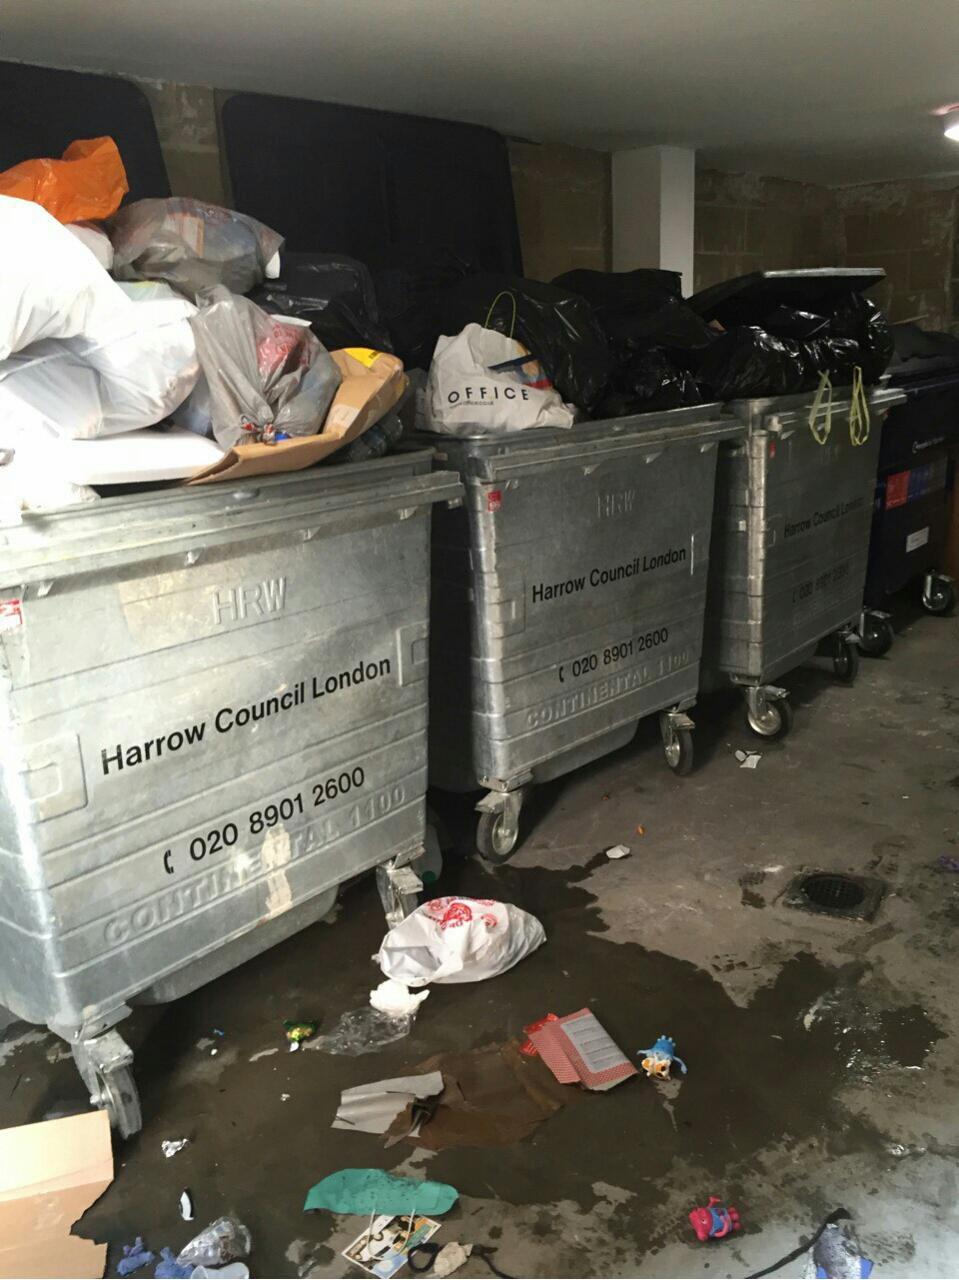 The Hyde clearing waste collection NW9